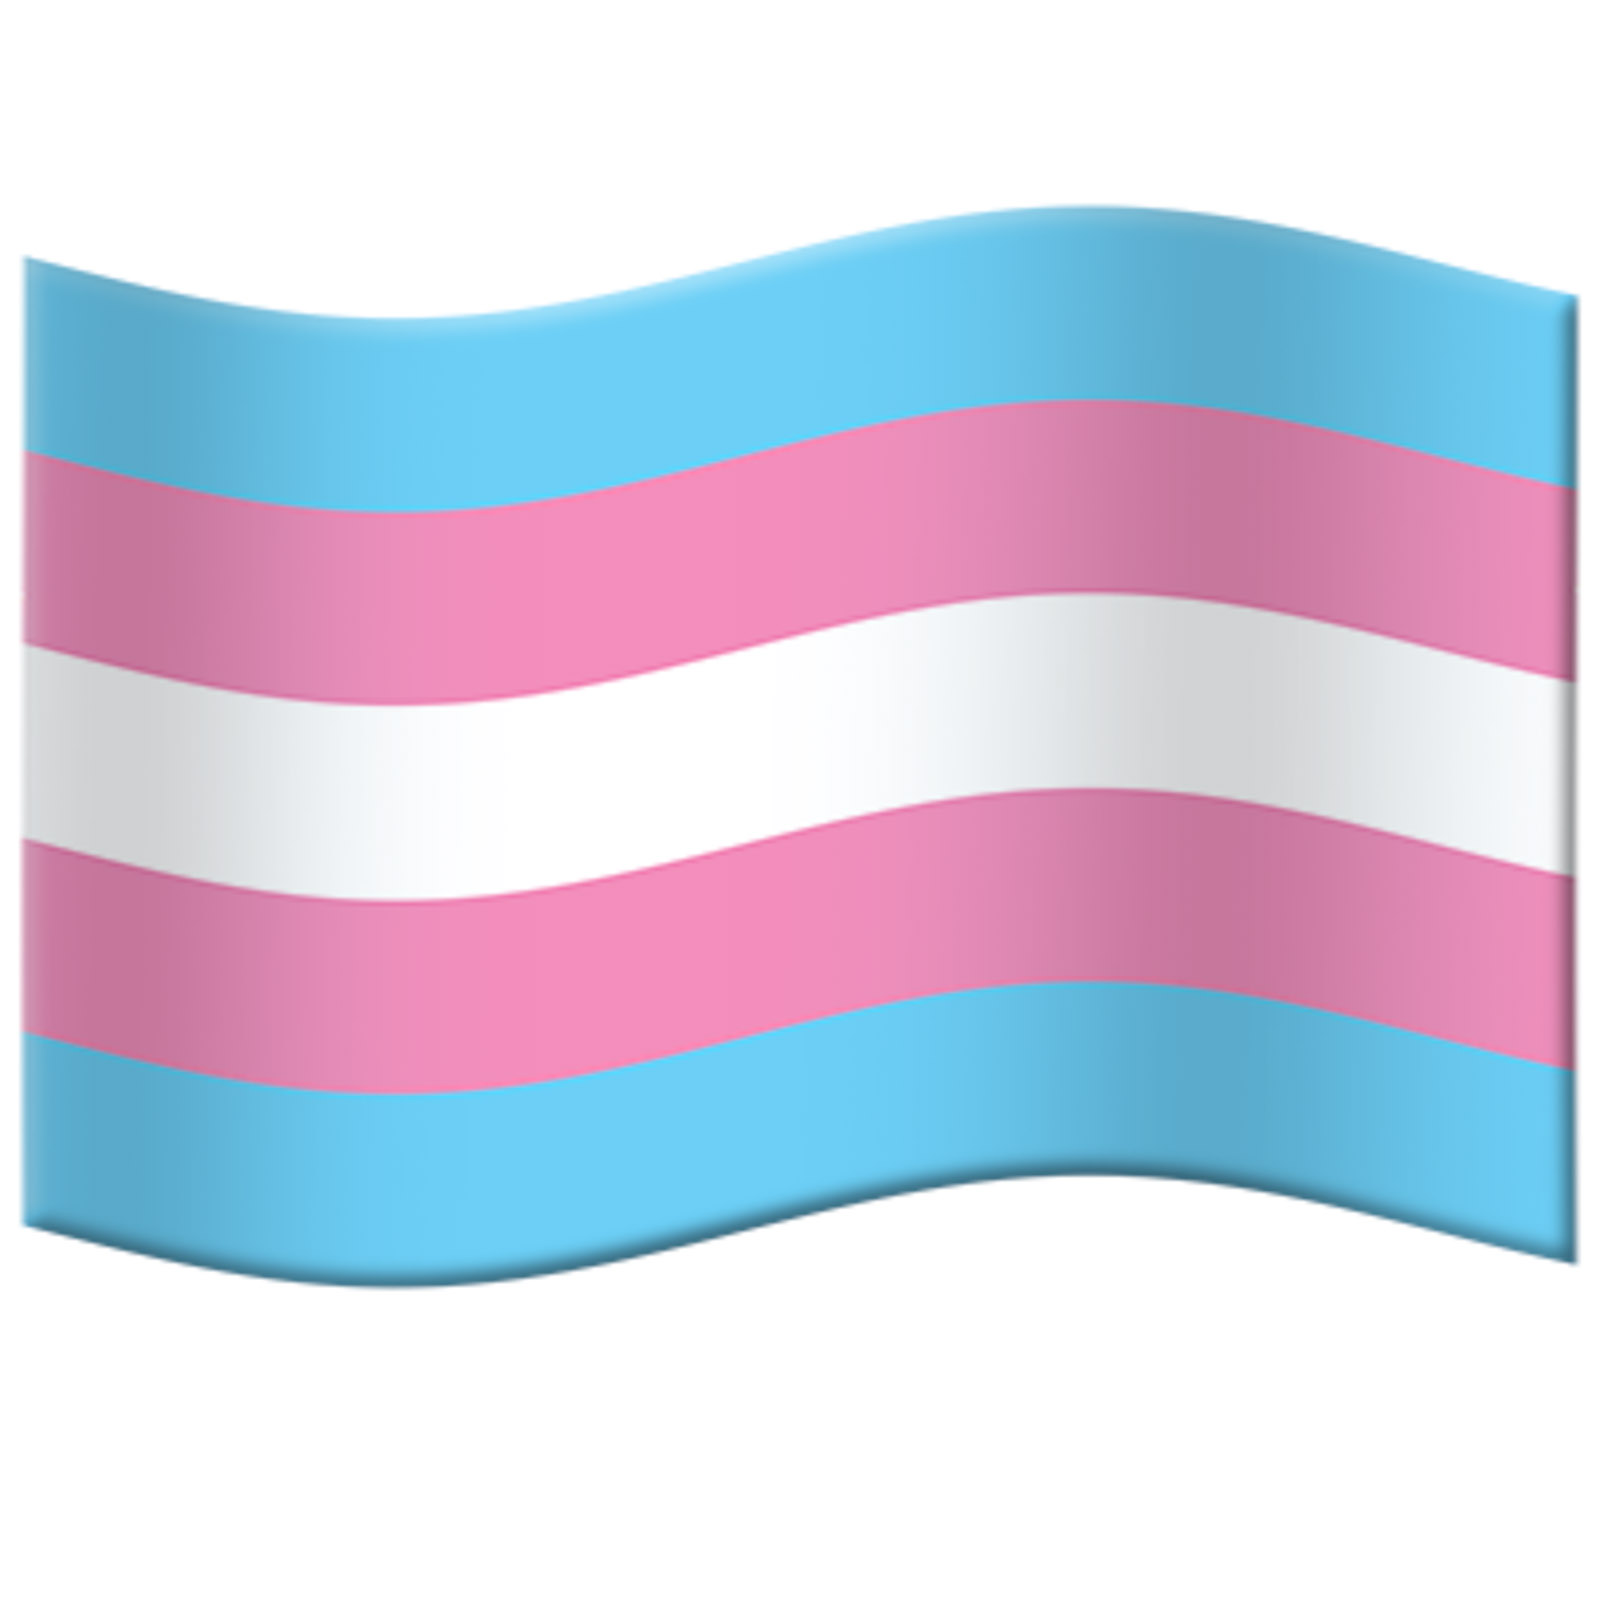 Transgender Pride Flag Emoji is now available on every iOS device on the planet